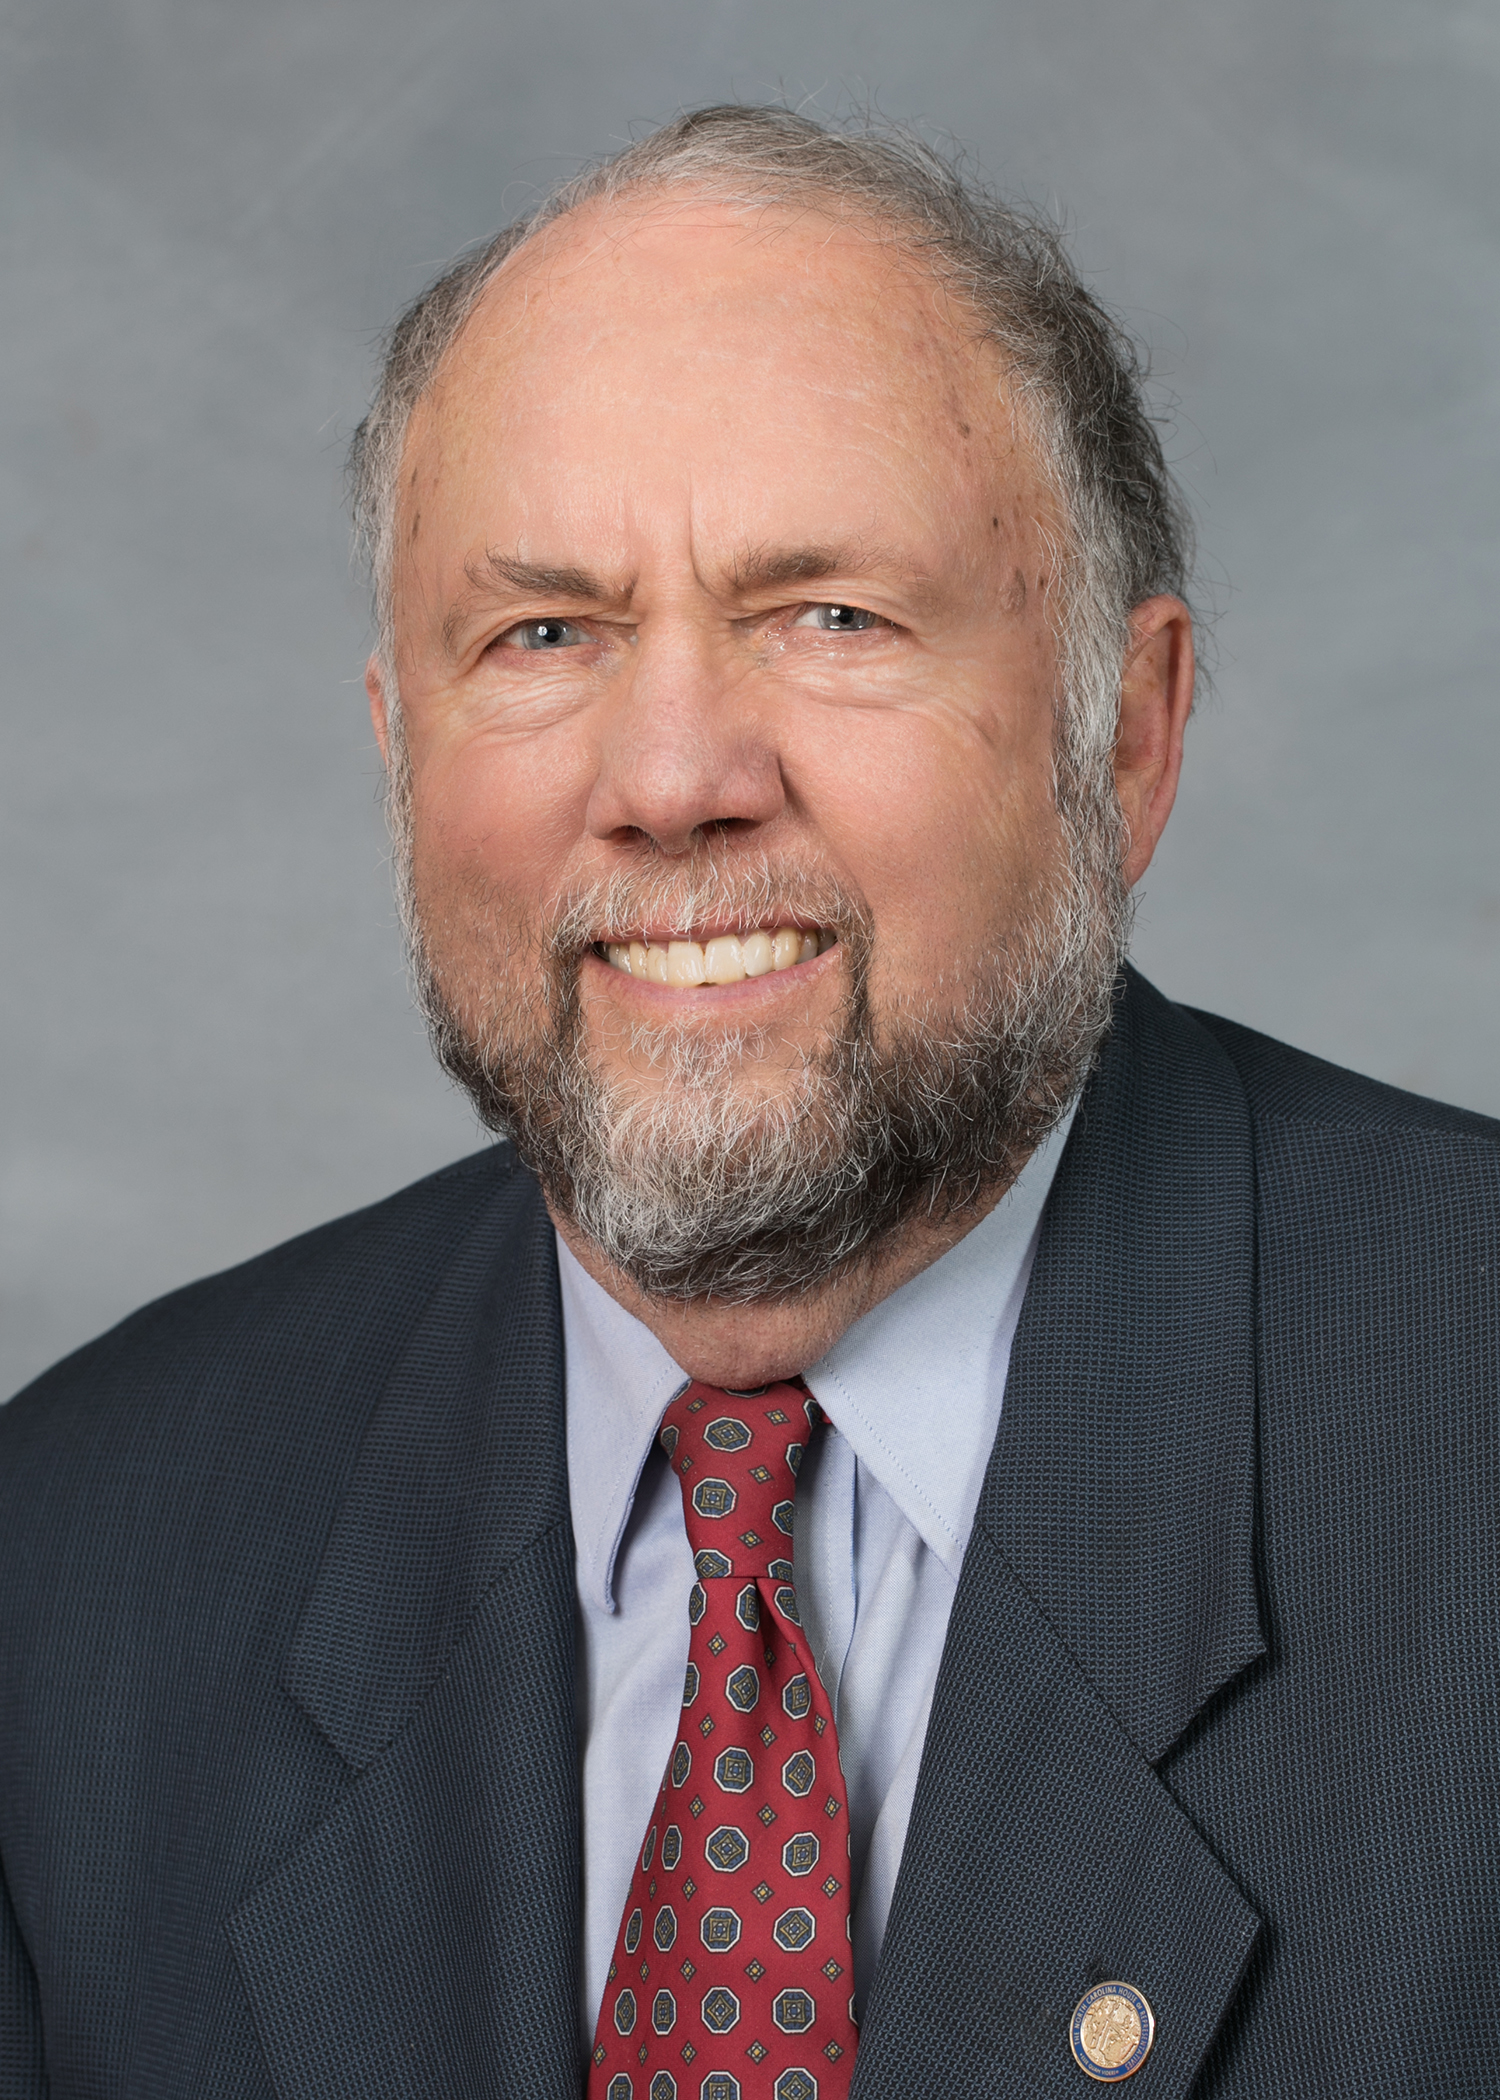 NC HOUSE REP, JOHN AGER - DISTRICT 115